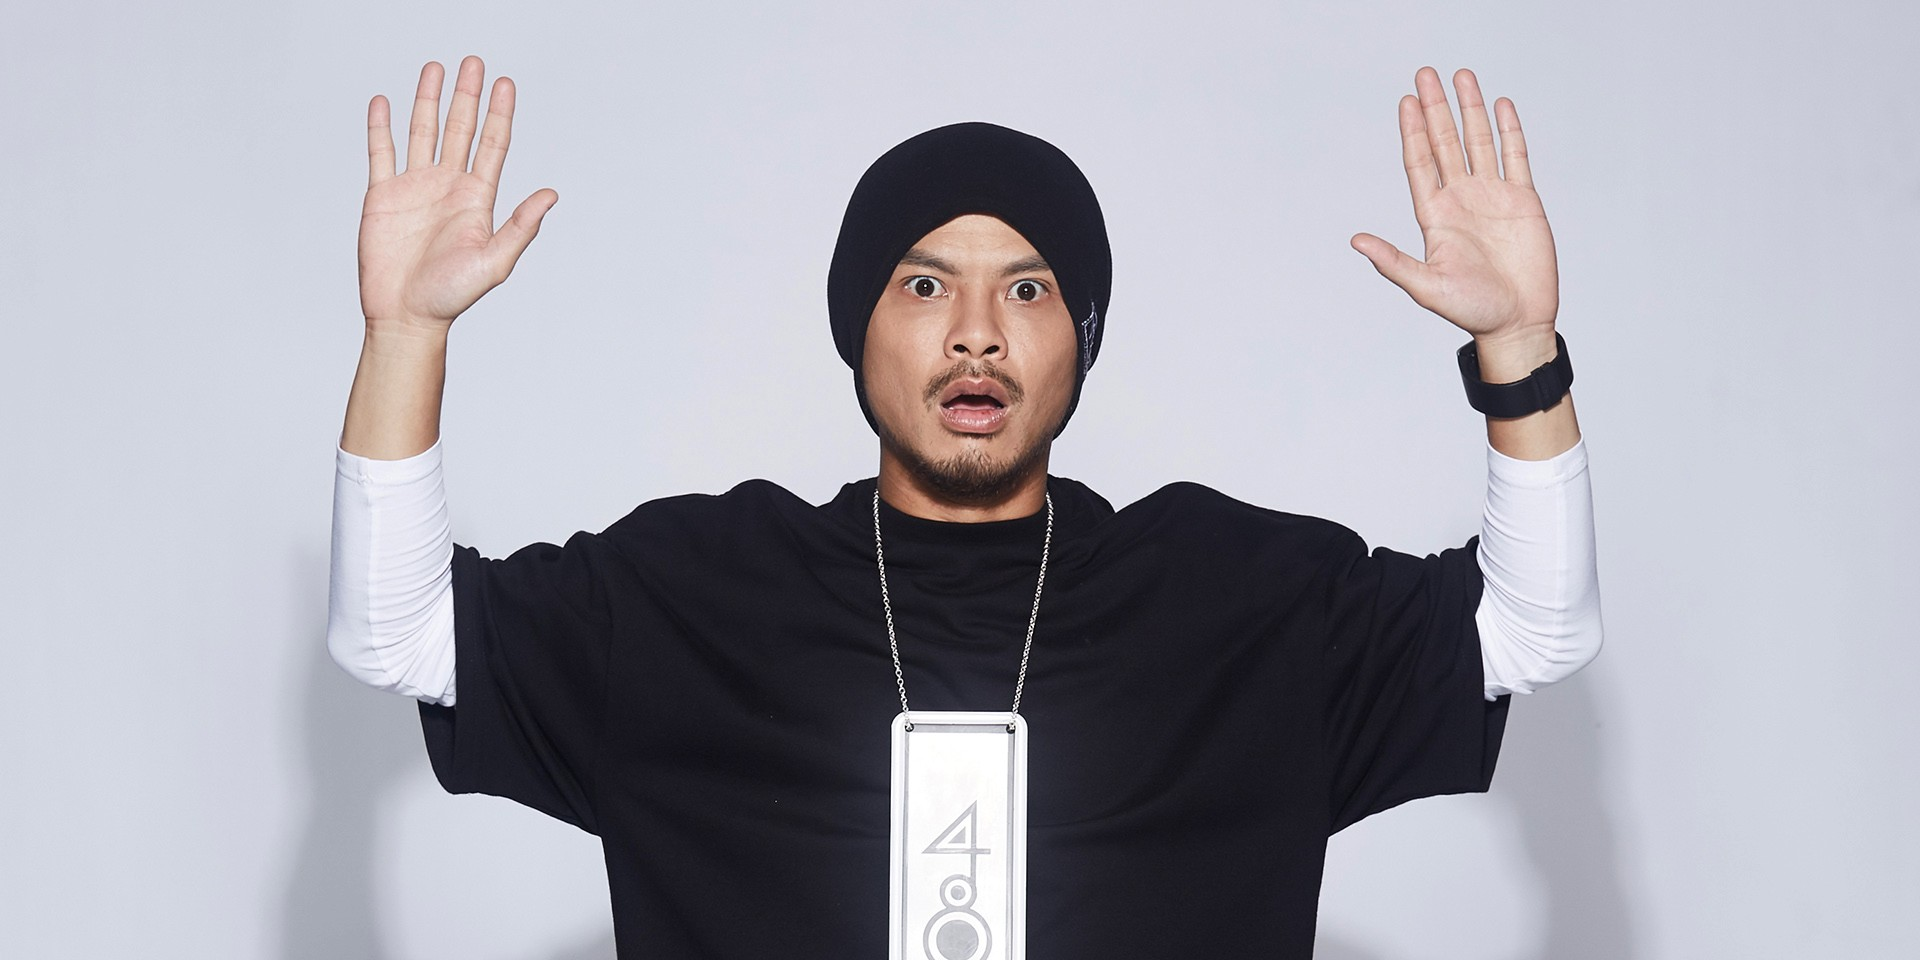 Malaysian rapper Namewee to perform in Singapore for the first time